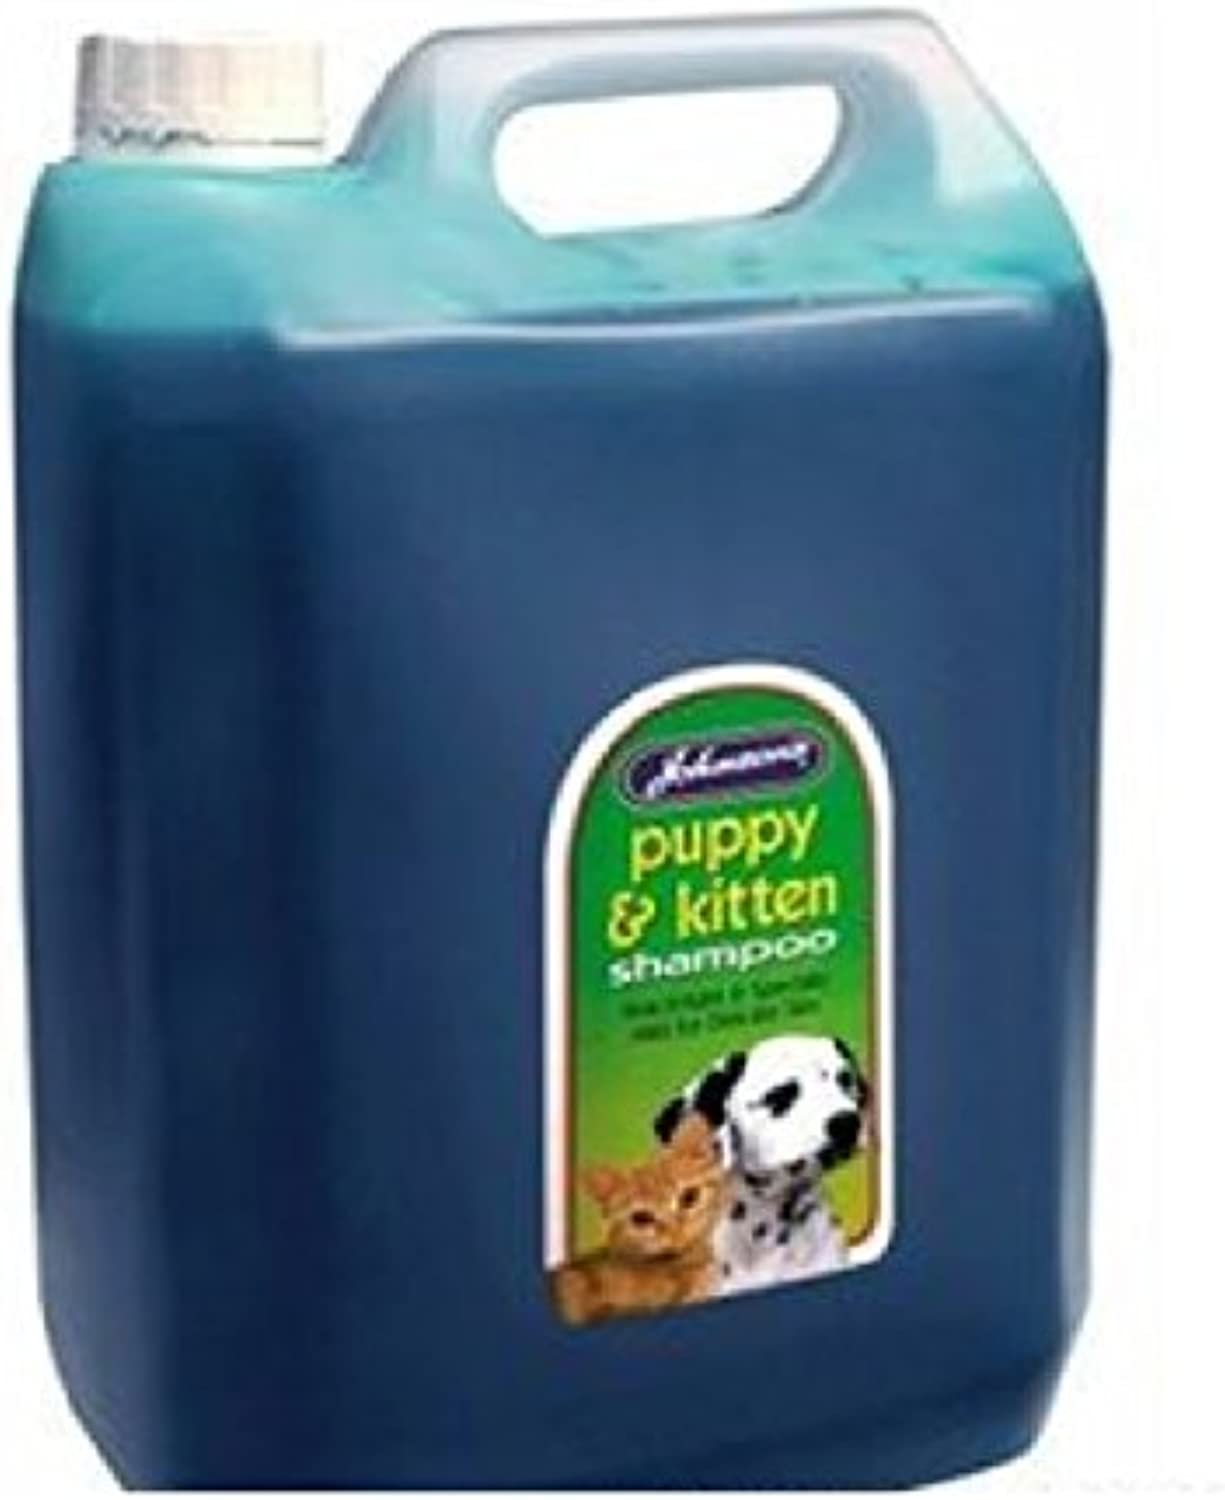 LEEWAY WOODWORK JOHNSONS PUPPY AND KITTEN SHAMPOO  5LT BULK CONTAINER  GROOMING  (2X 5 L CONTAINERS)